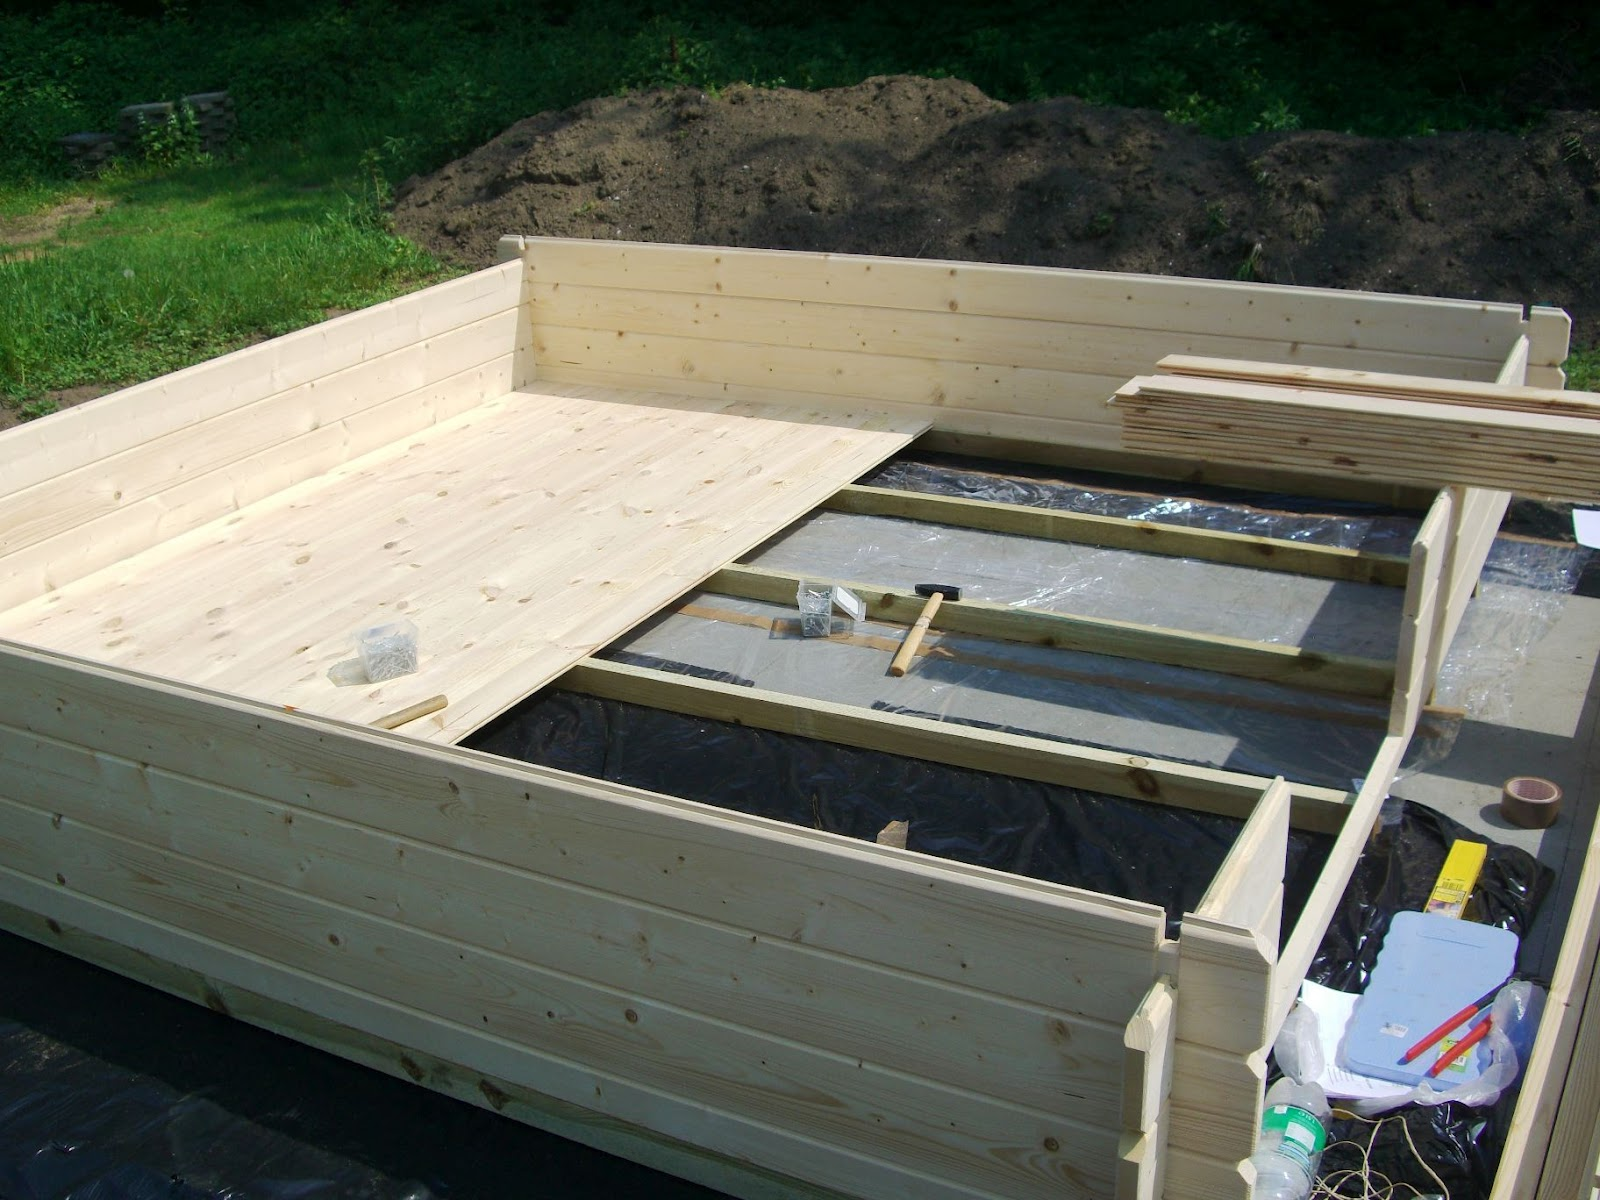 gartenhaus fundament dachpappe my blog. Black Bedroom Furniture Sets. Home Design Ideas